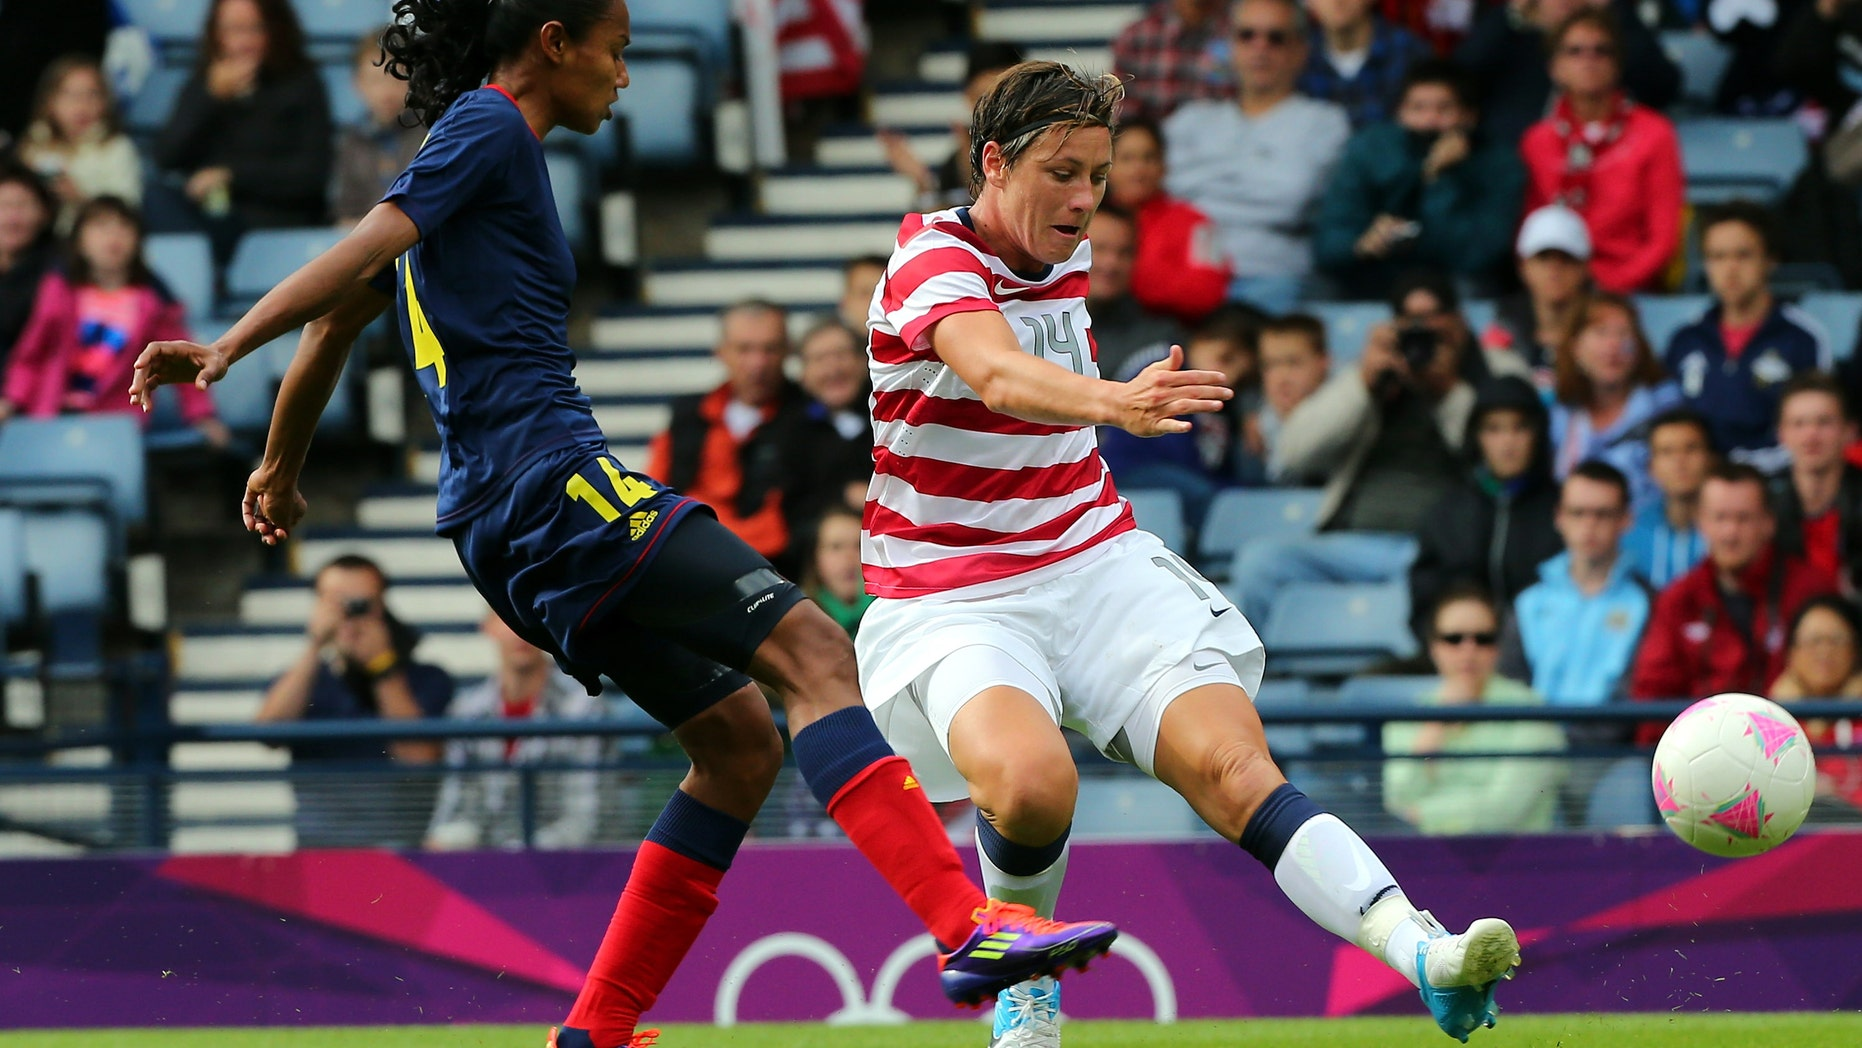 Abby Wambach of USA battles with Louisa Necib of Columbia during the Women's Football first round Group G match between United States and Colombia on Day 1 of the London 2012 Olympic Games at Hampden Park on July 28, 2012 in Glasgow, Scotland.  (Photo by Stanley Chou/Getty Images)